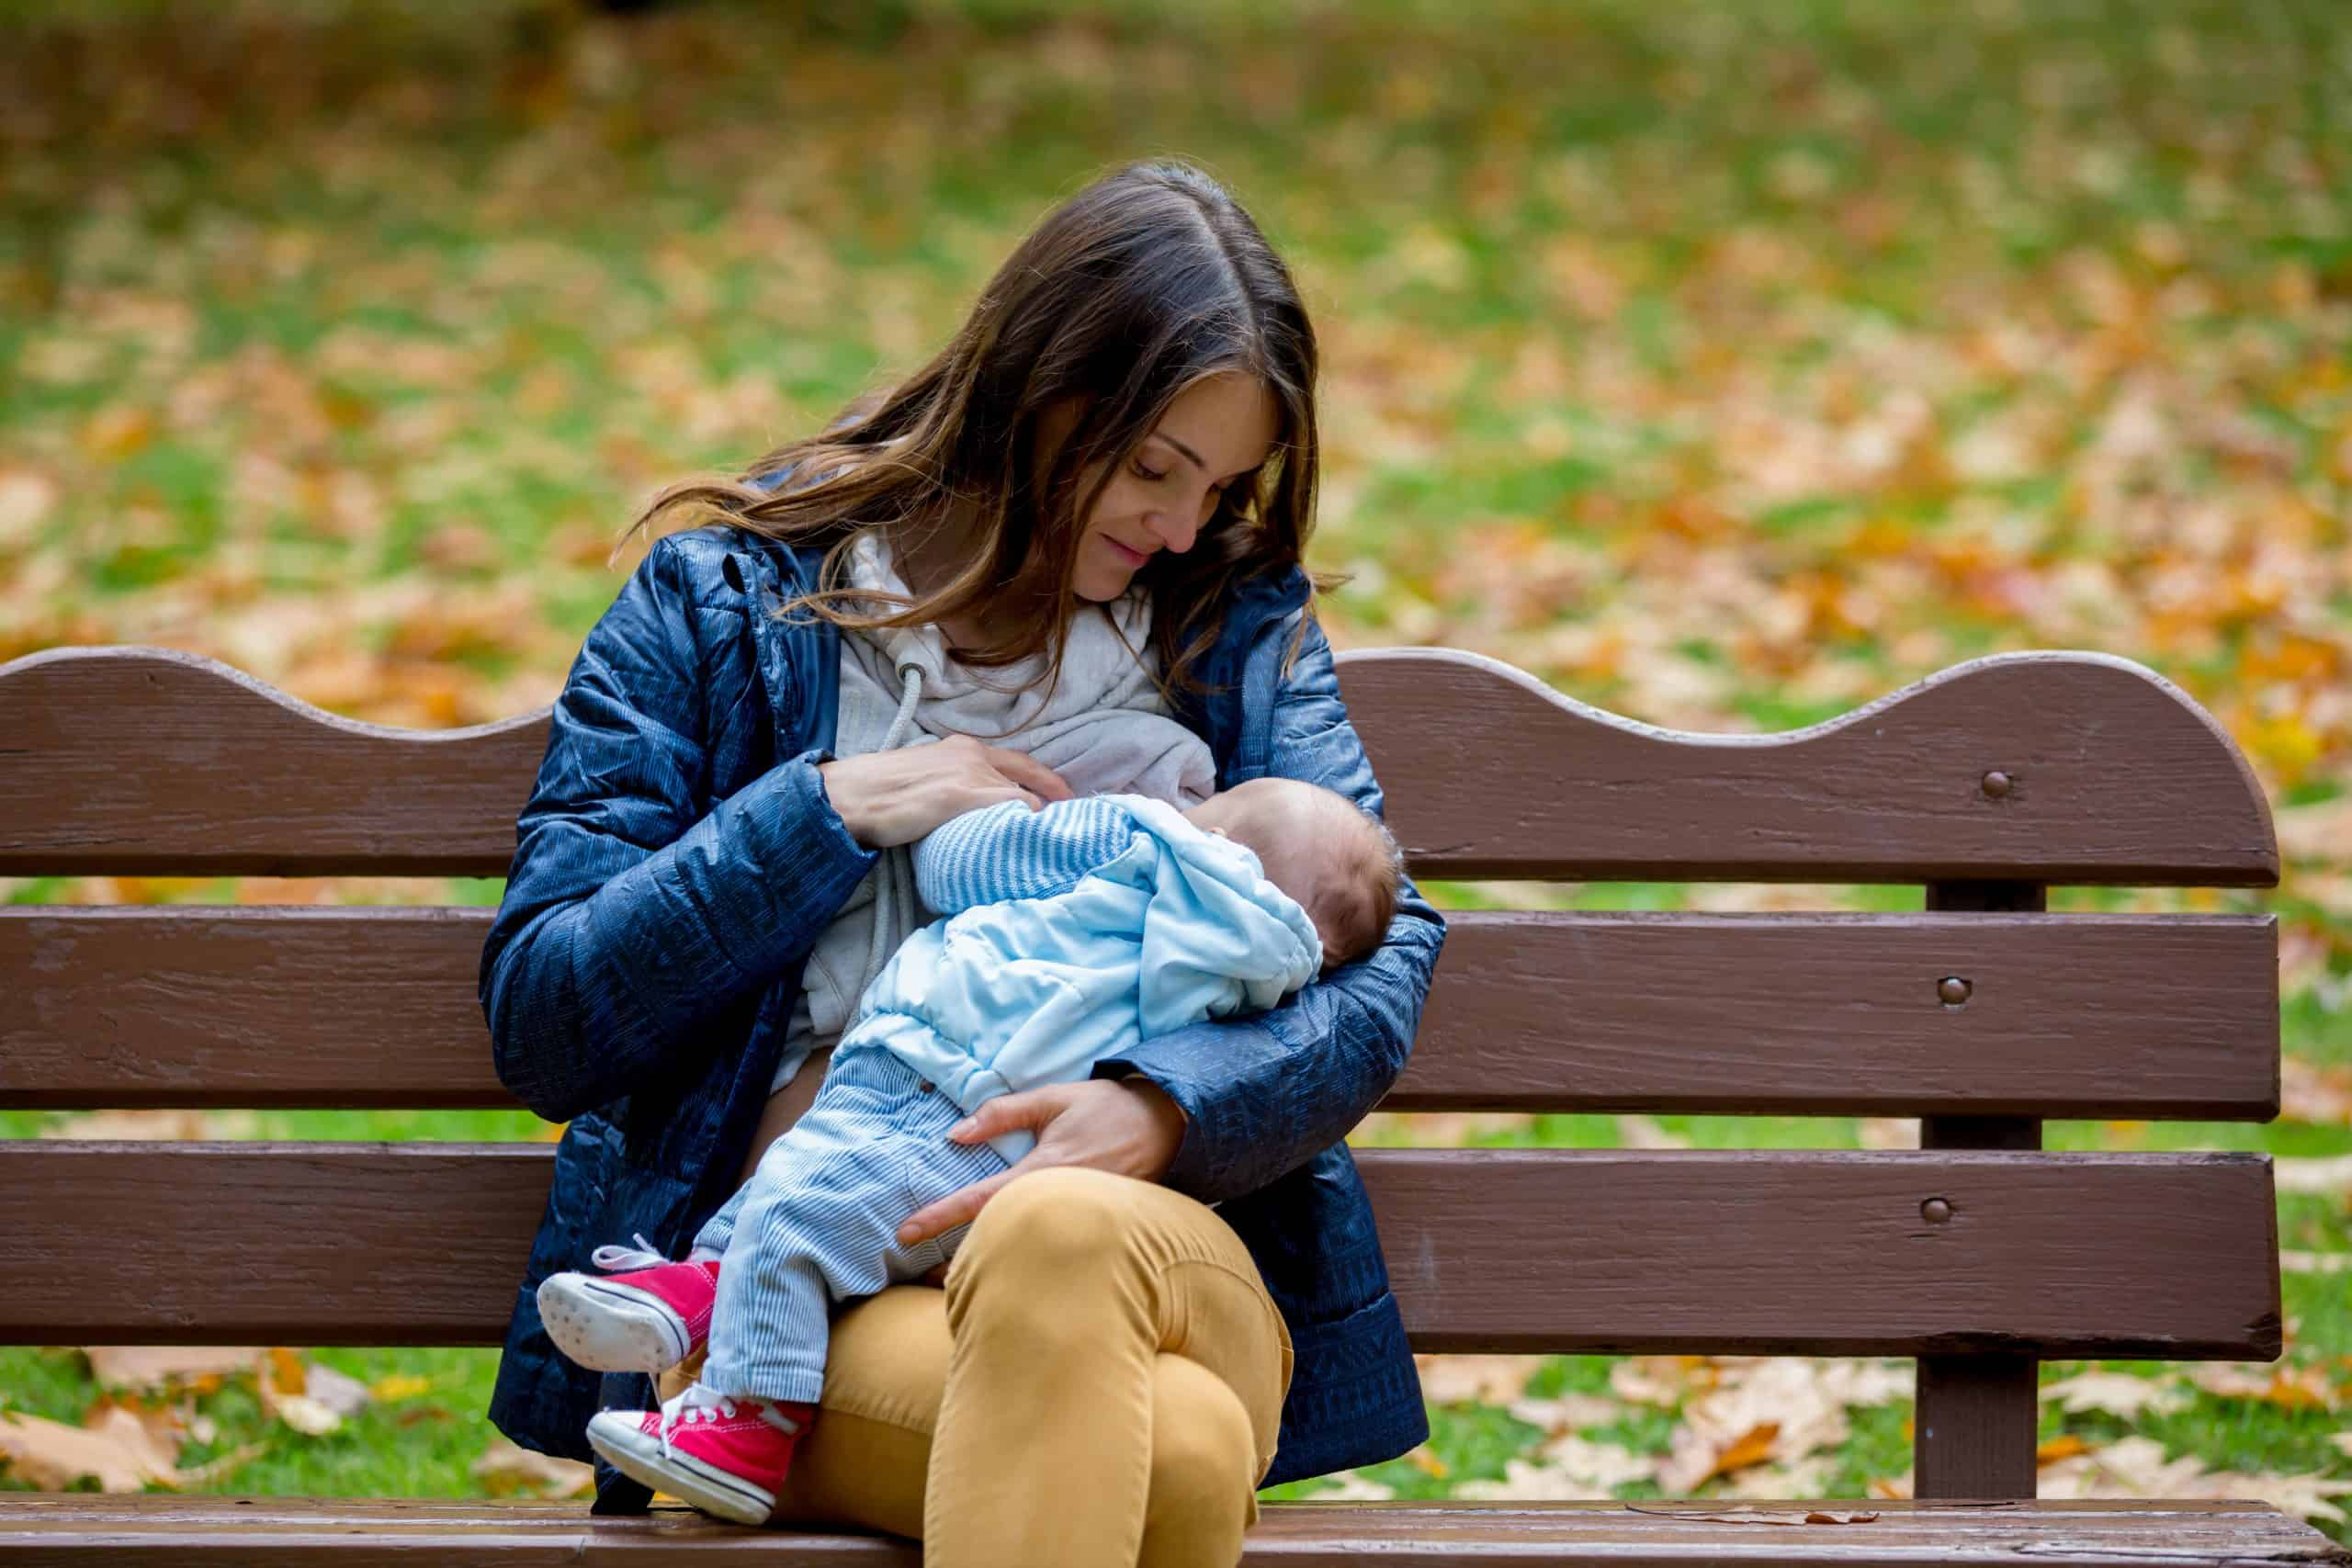 mother breastfeeding on a park bench outside